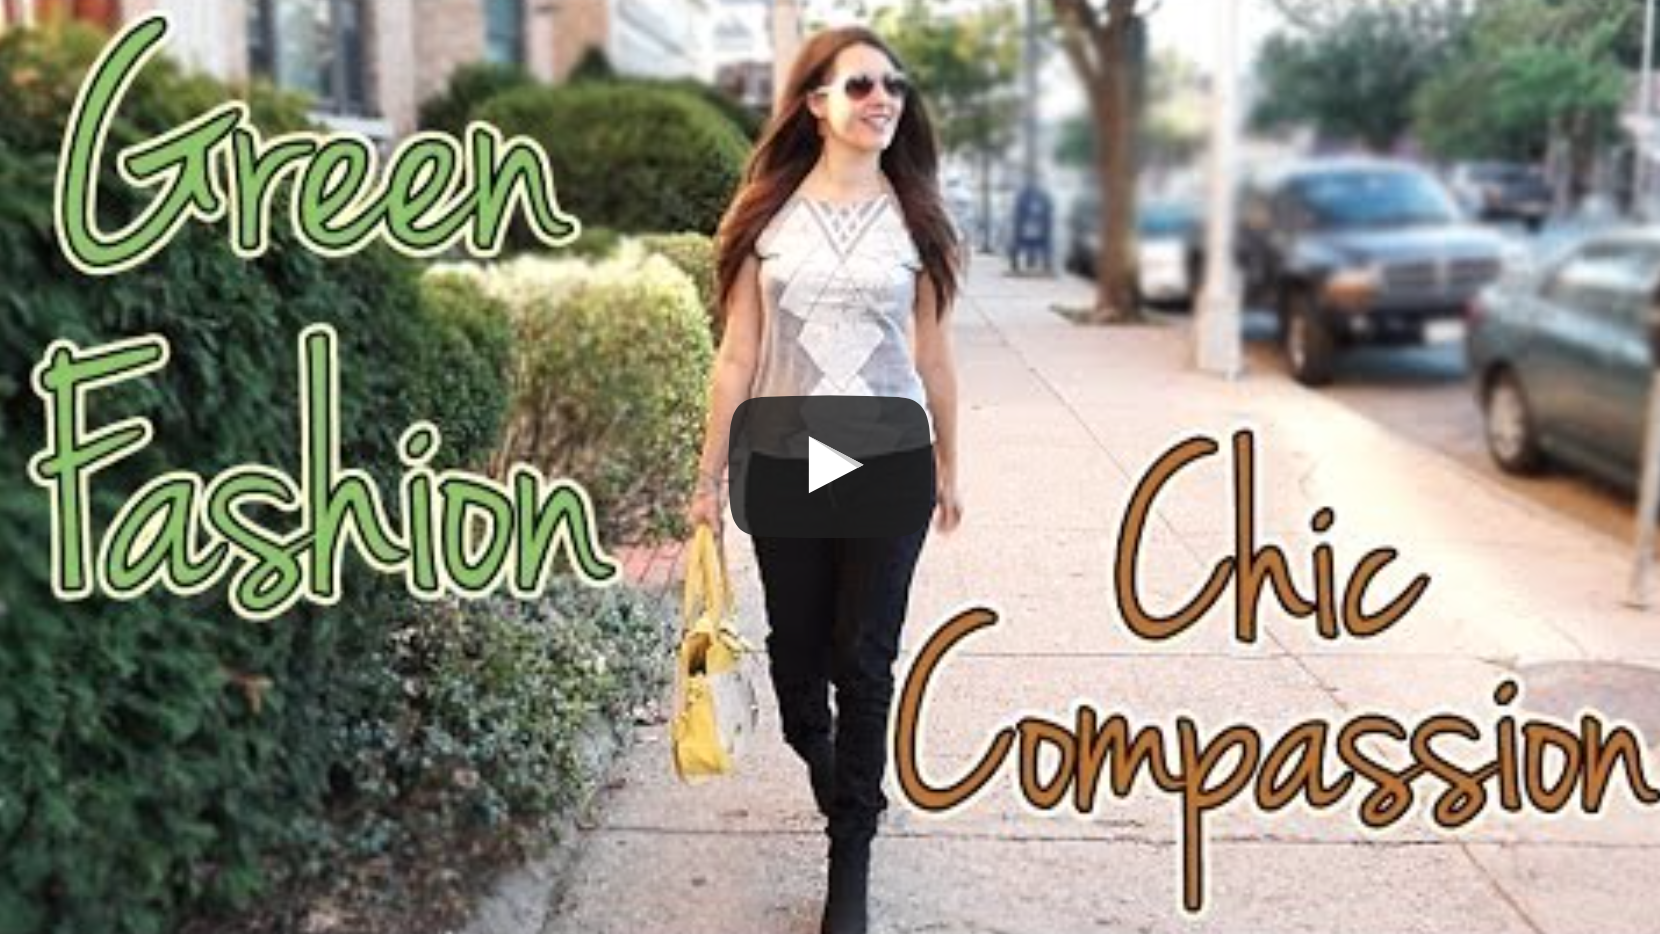 Green Fashion, Chic Compassion: Eco-Vegan Fall Style | Vegan Flix